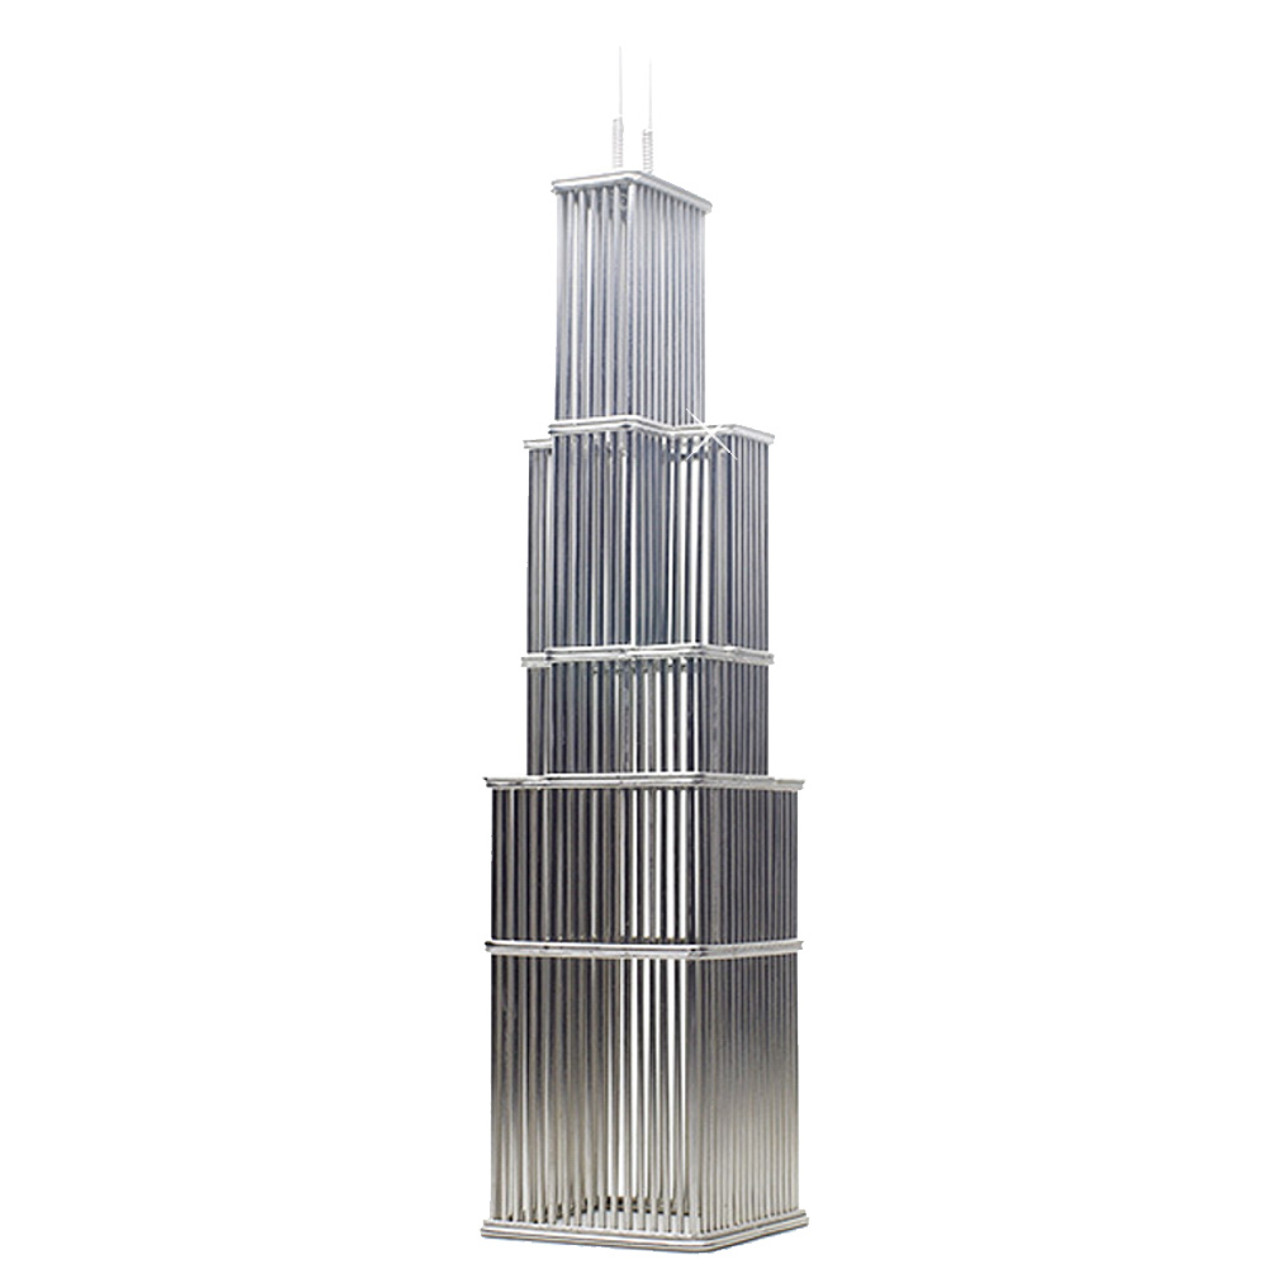 Willis Tower (formerly Sears Tower) Wire Model